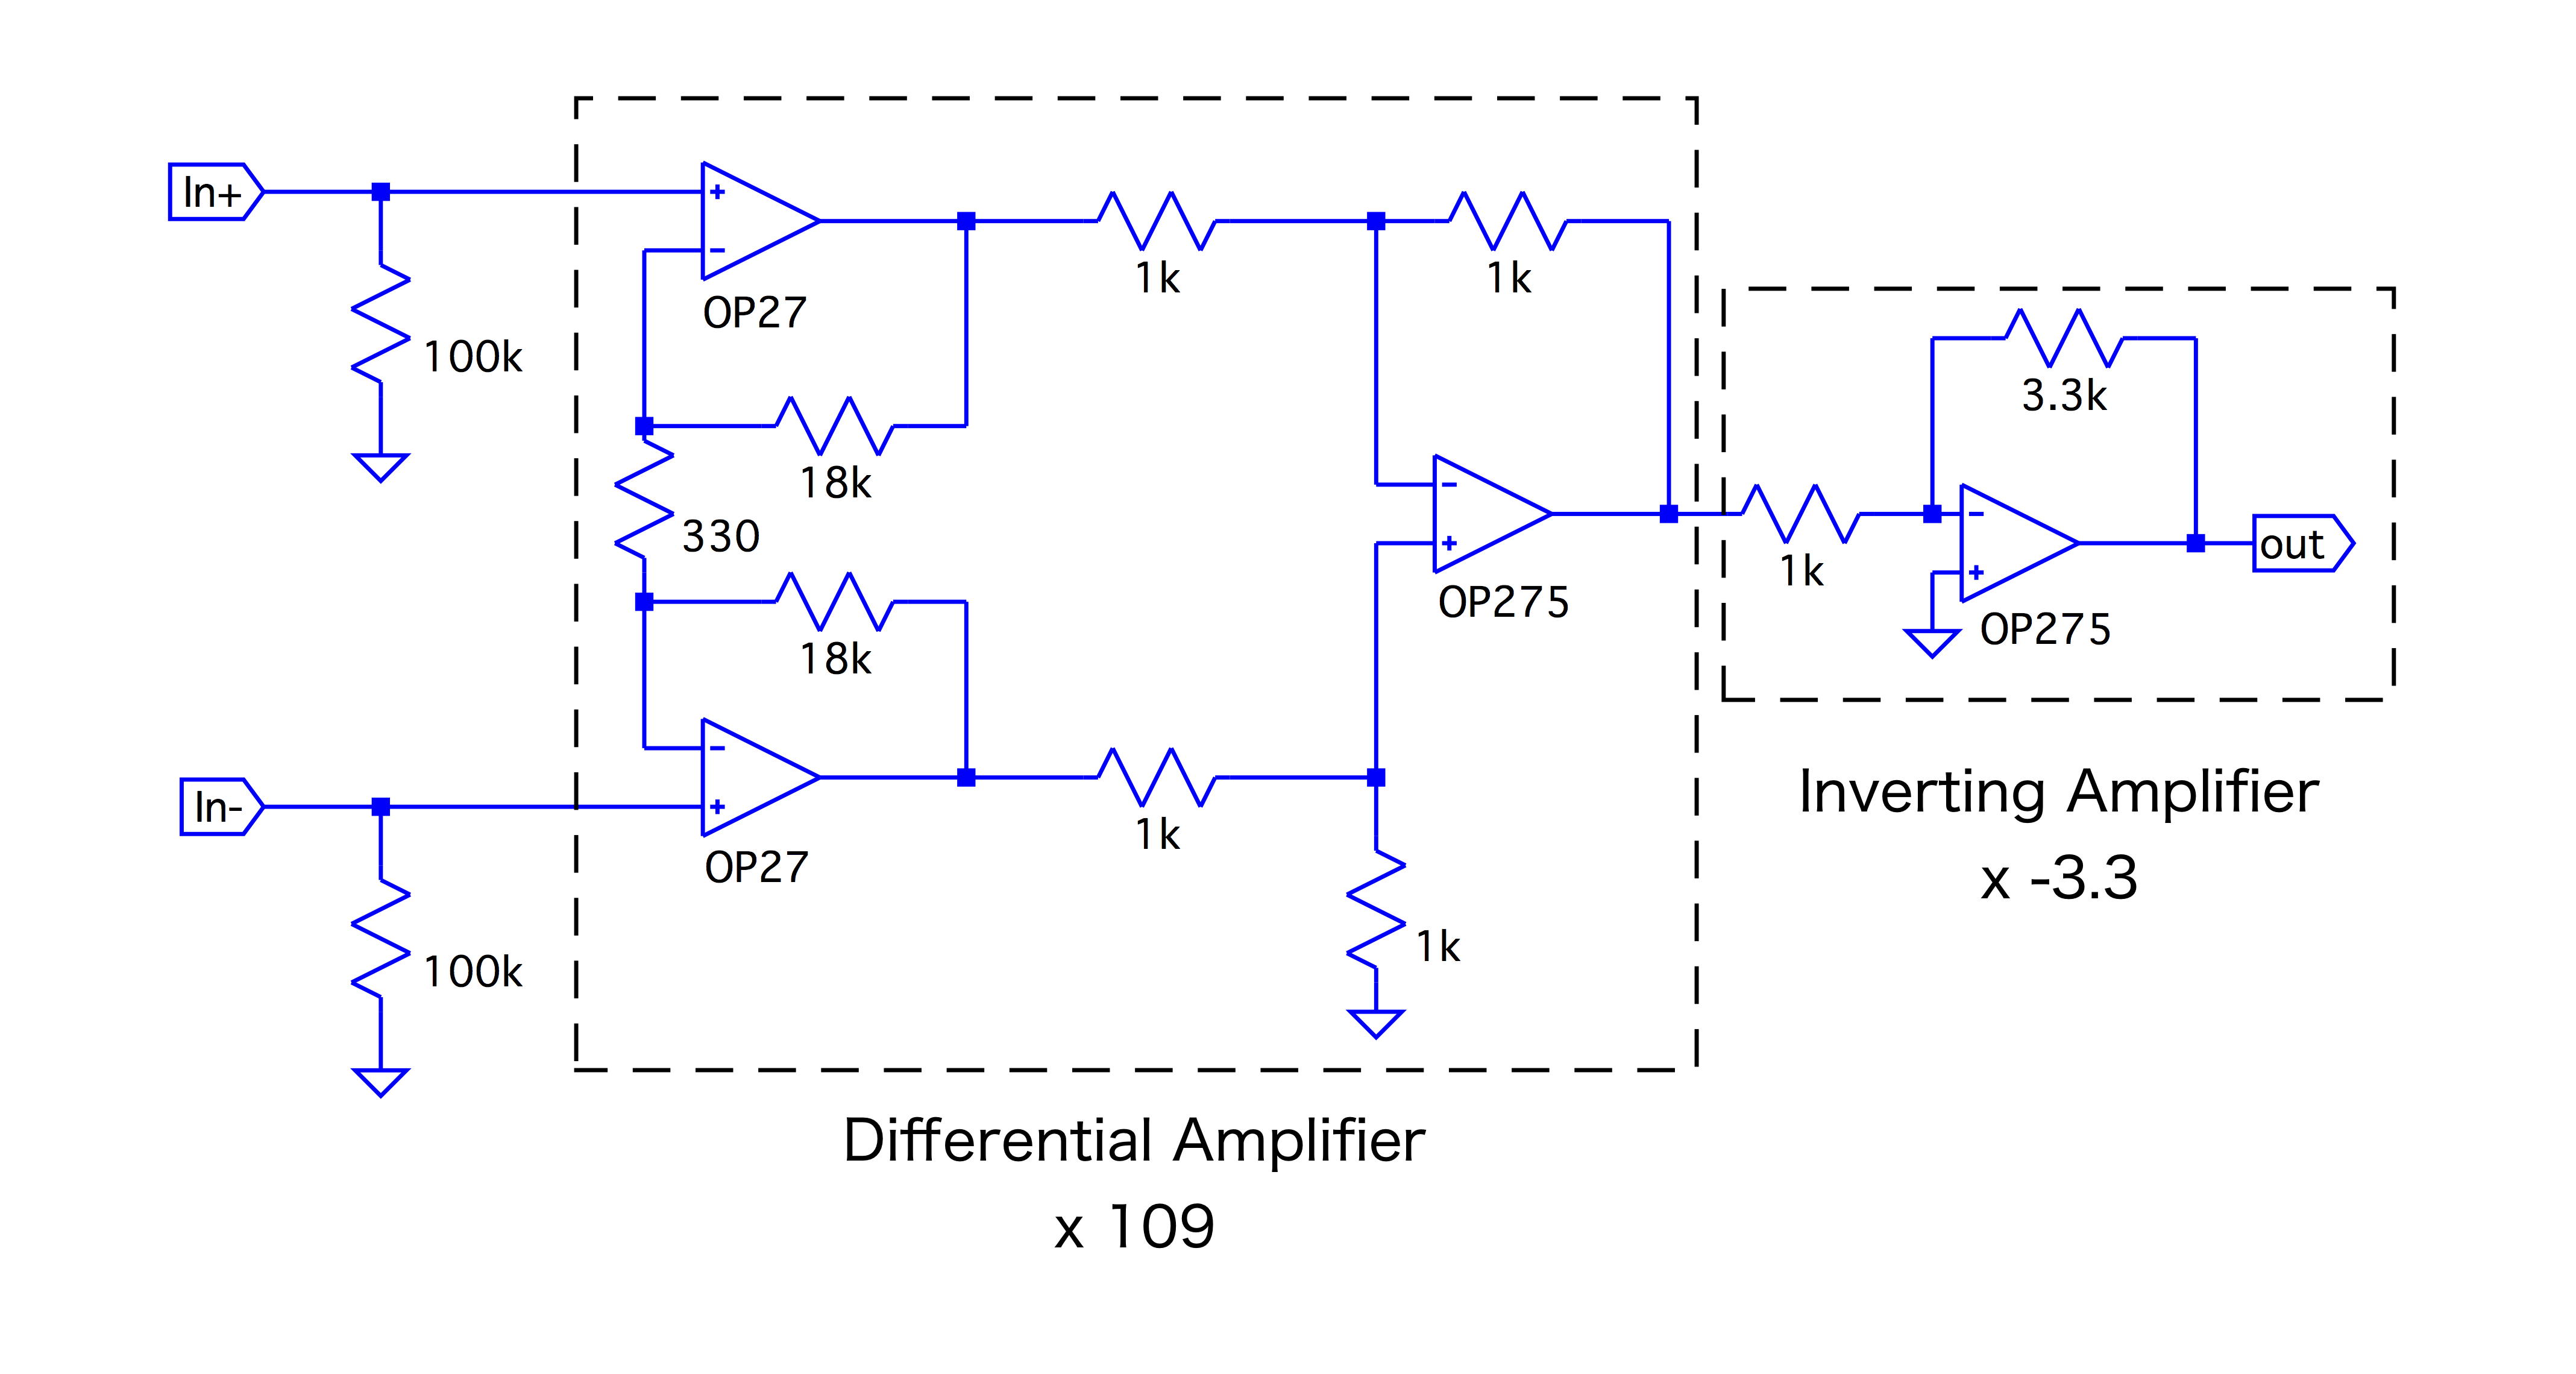 DifferentialAmplifier.png